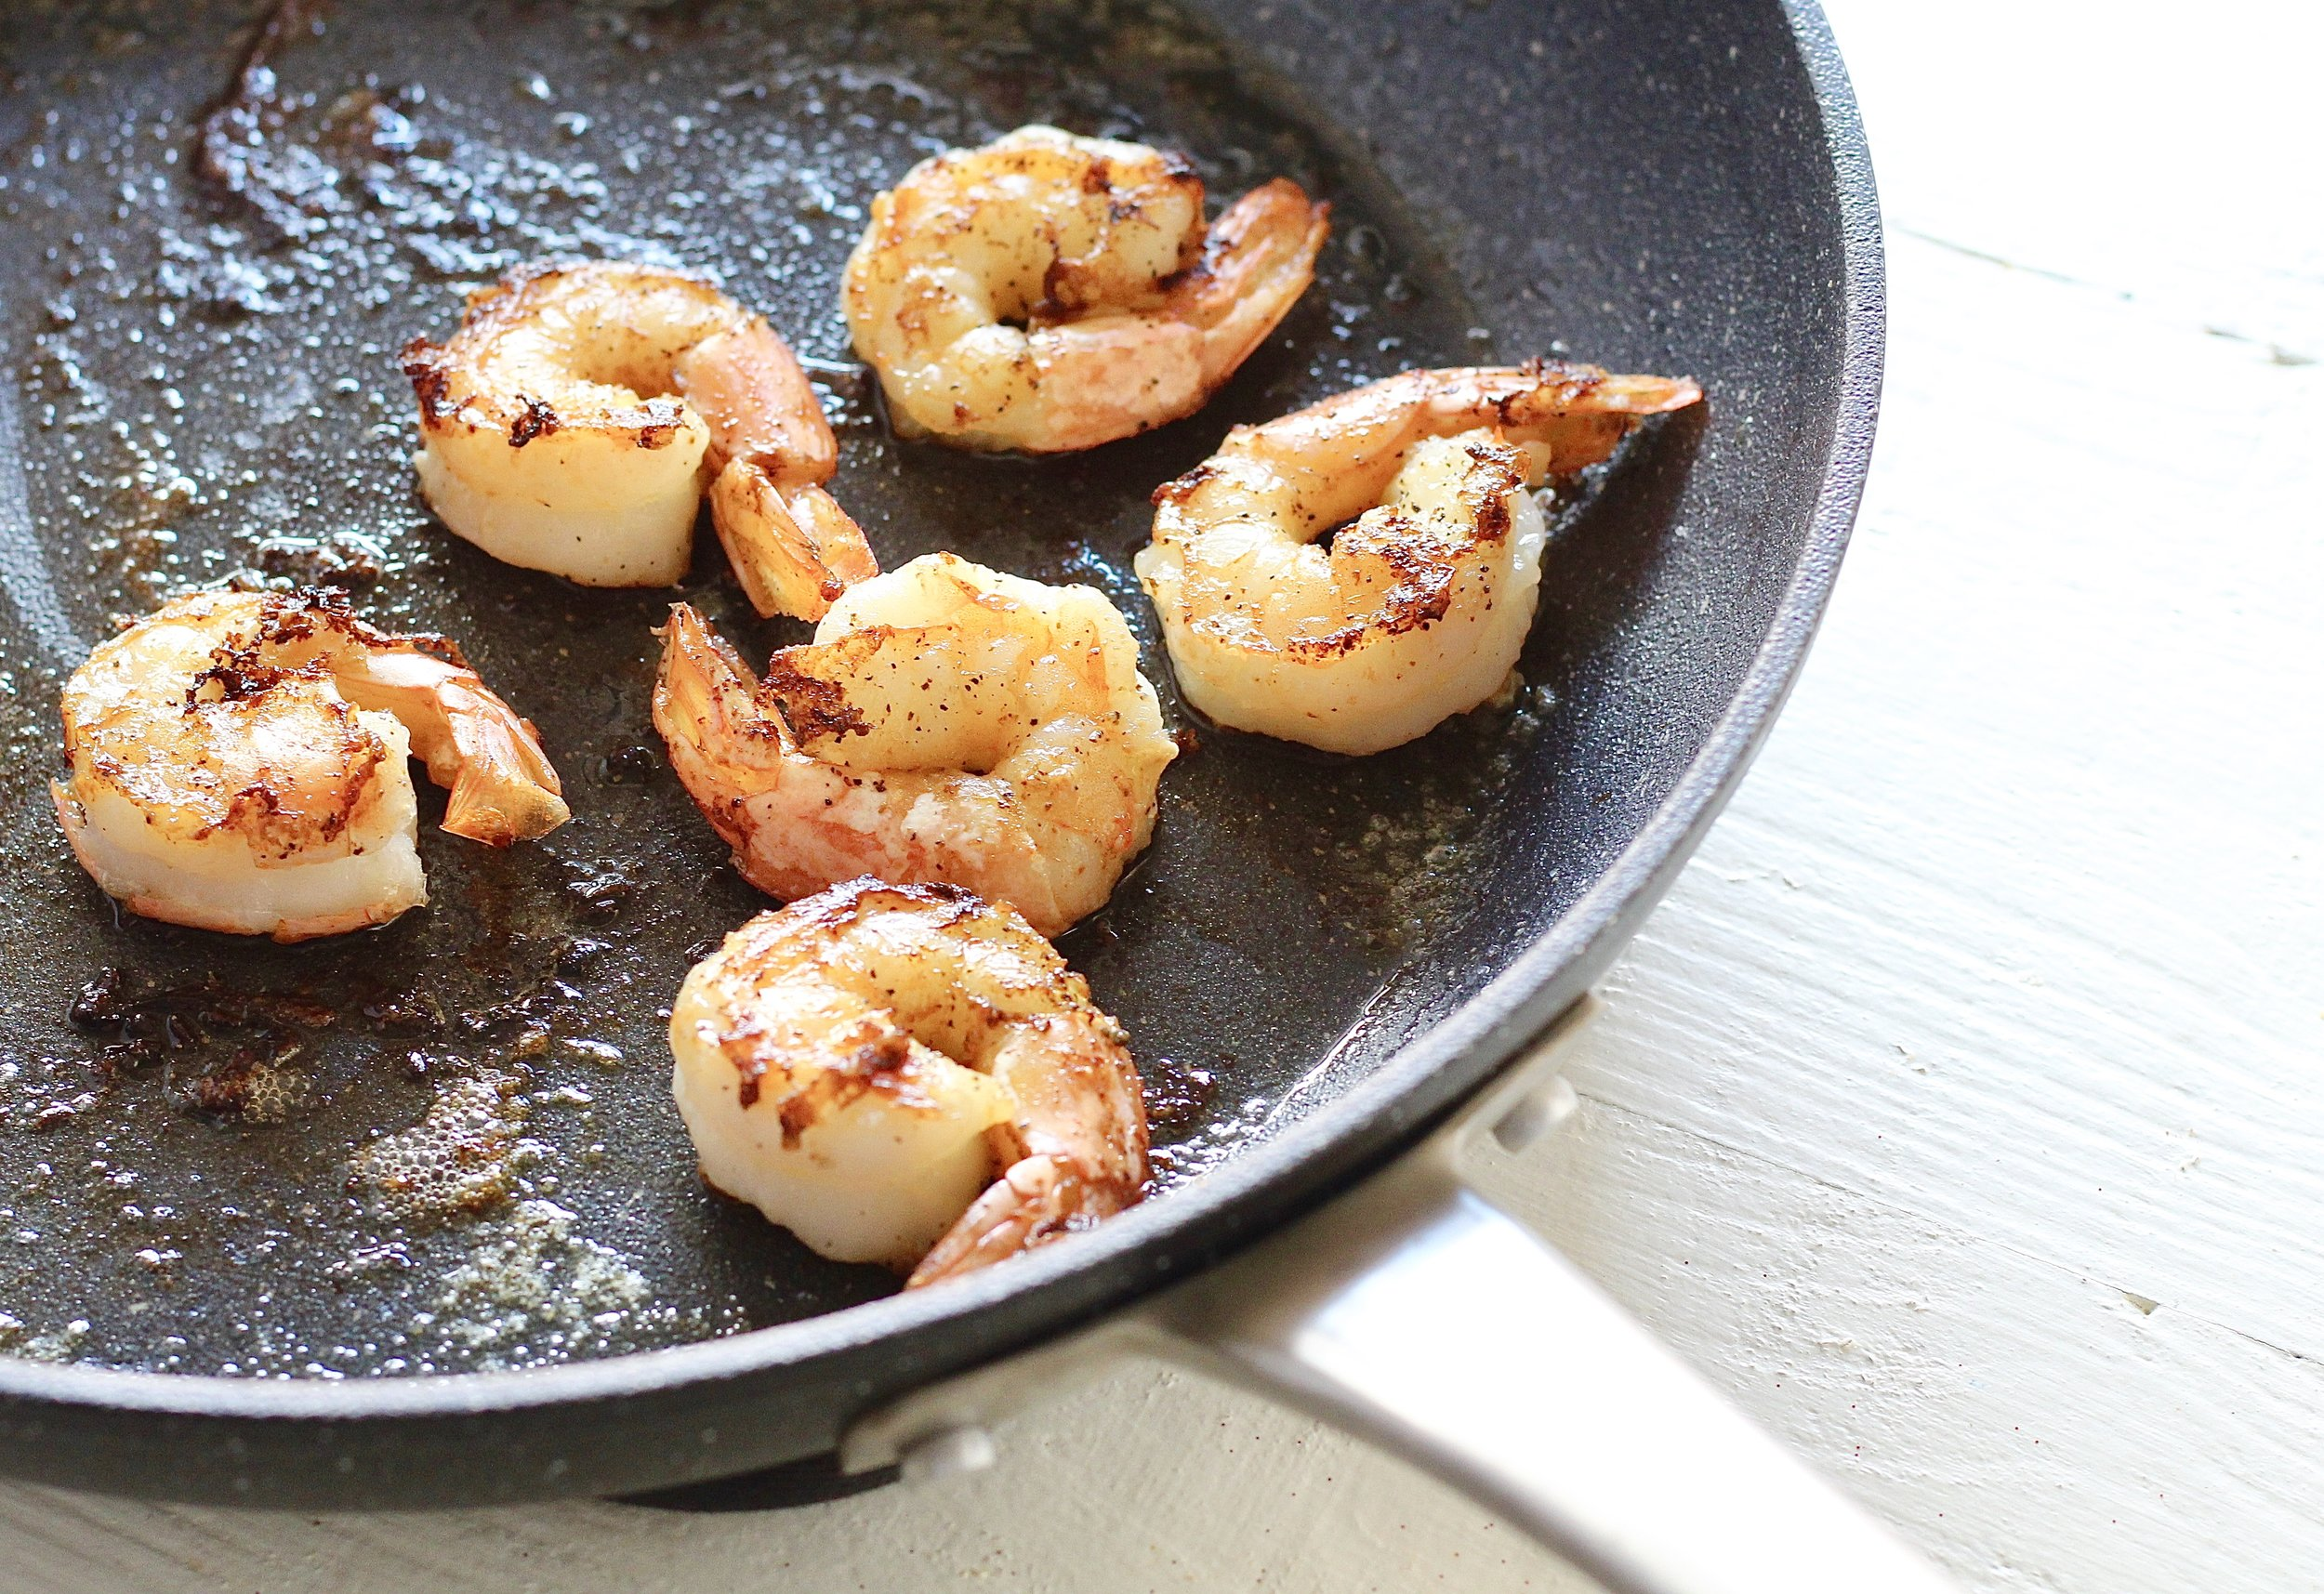 How to cook shrimp at home